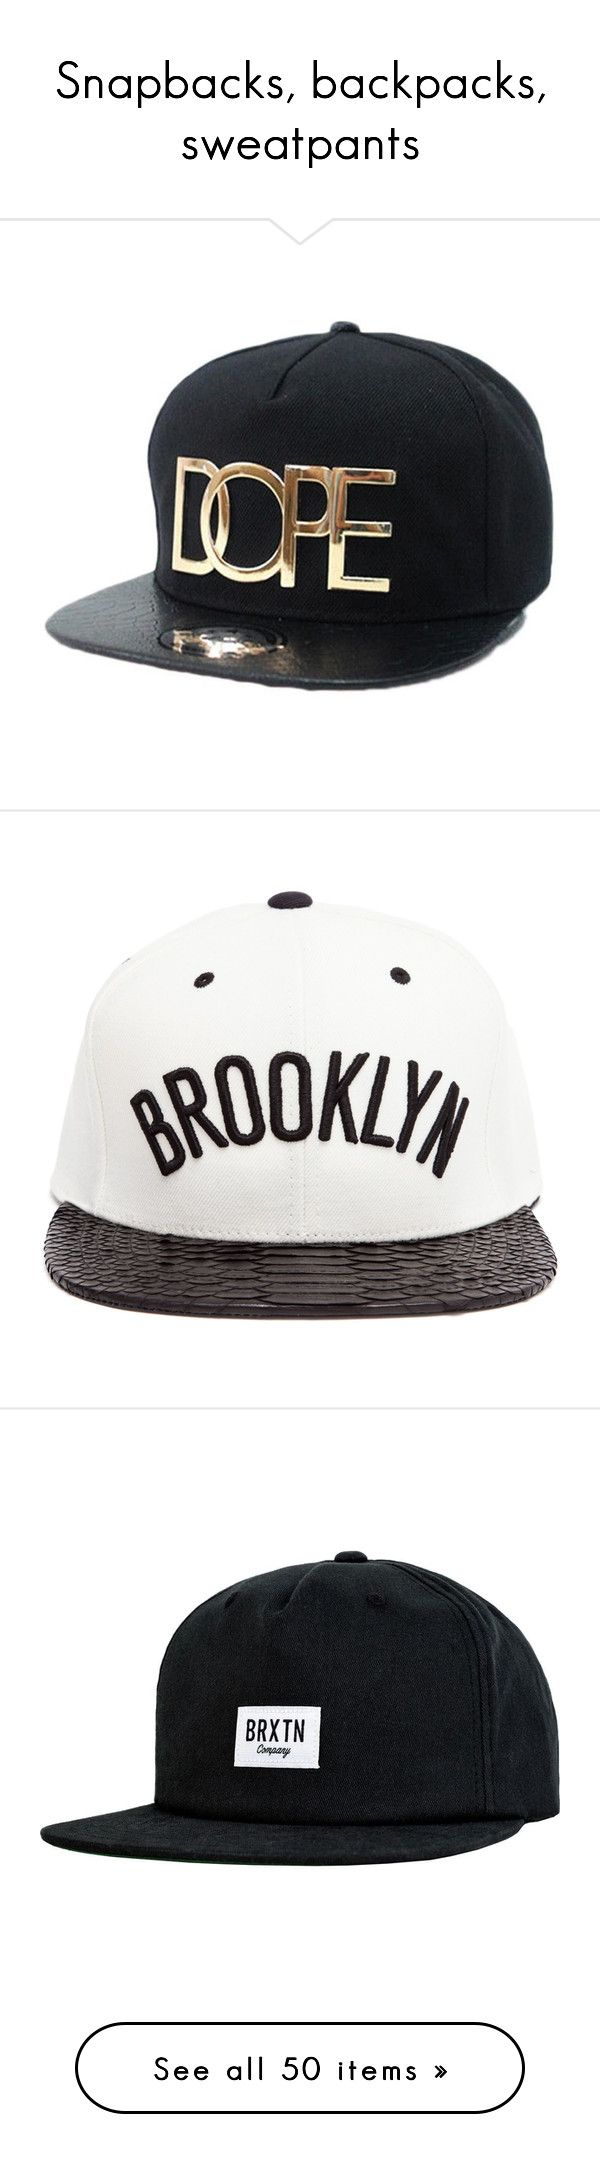 """""""Snapbacks, backpacks, sweatpants"""" by linnywe ❤ liked on Polyvore featuring accessories, hats, cap, baseball cap hats, black snapback hats, baseball cap, black baseball cap, black snapback, caps and head"""